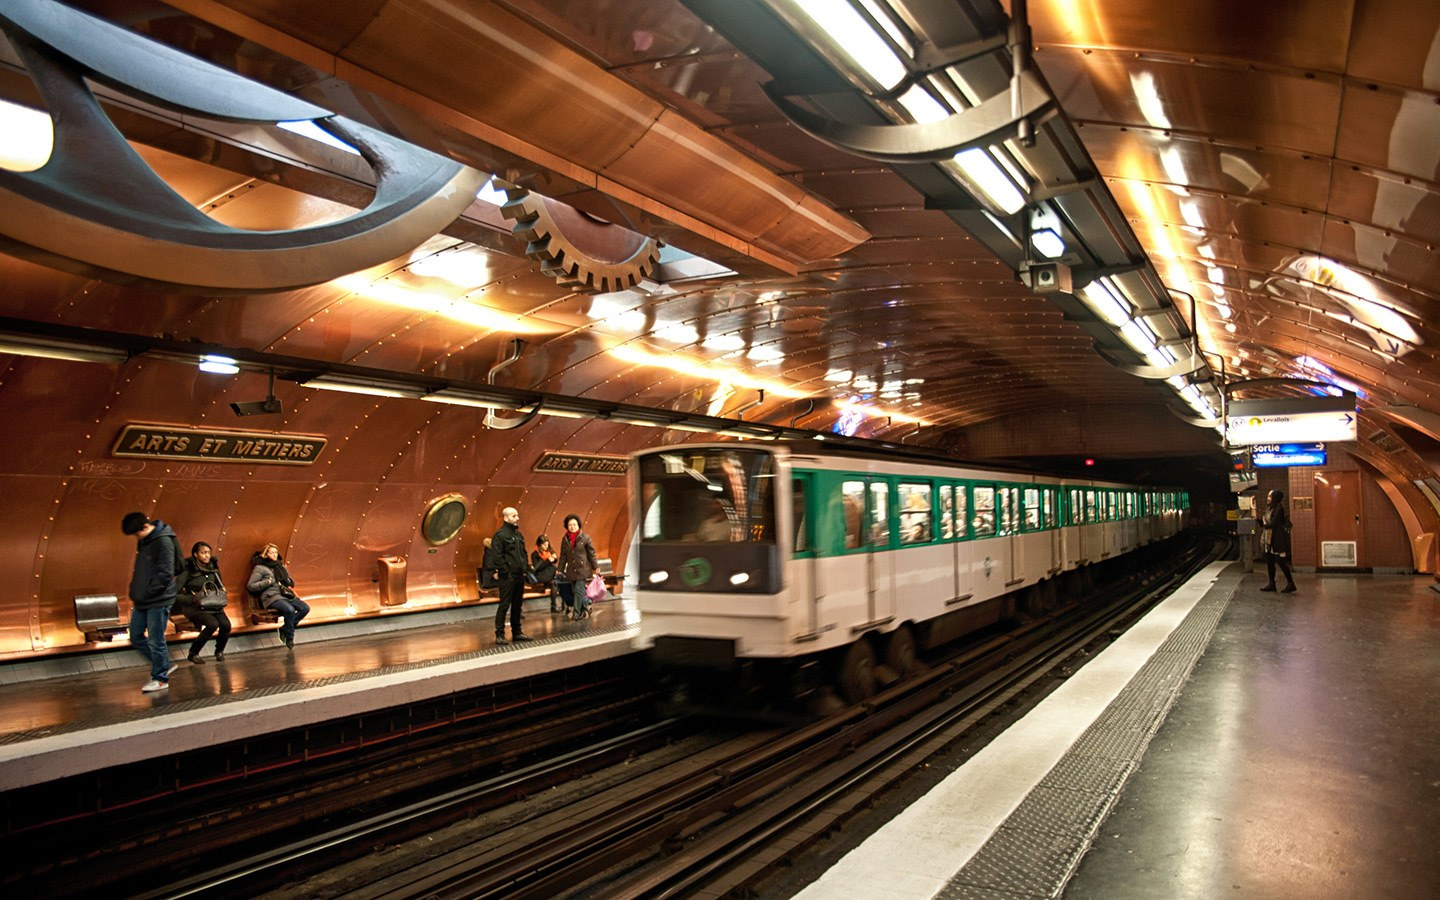 The steampunk-style metro station at Arts et Métiers in Paris